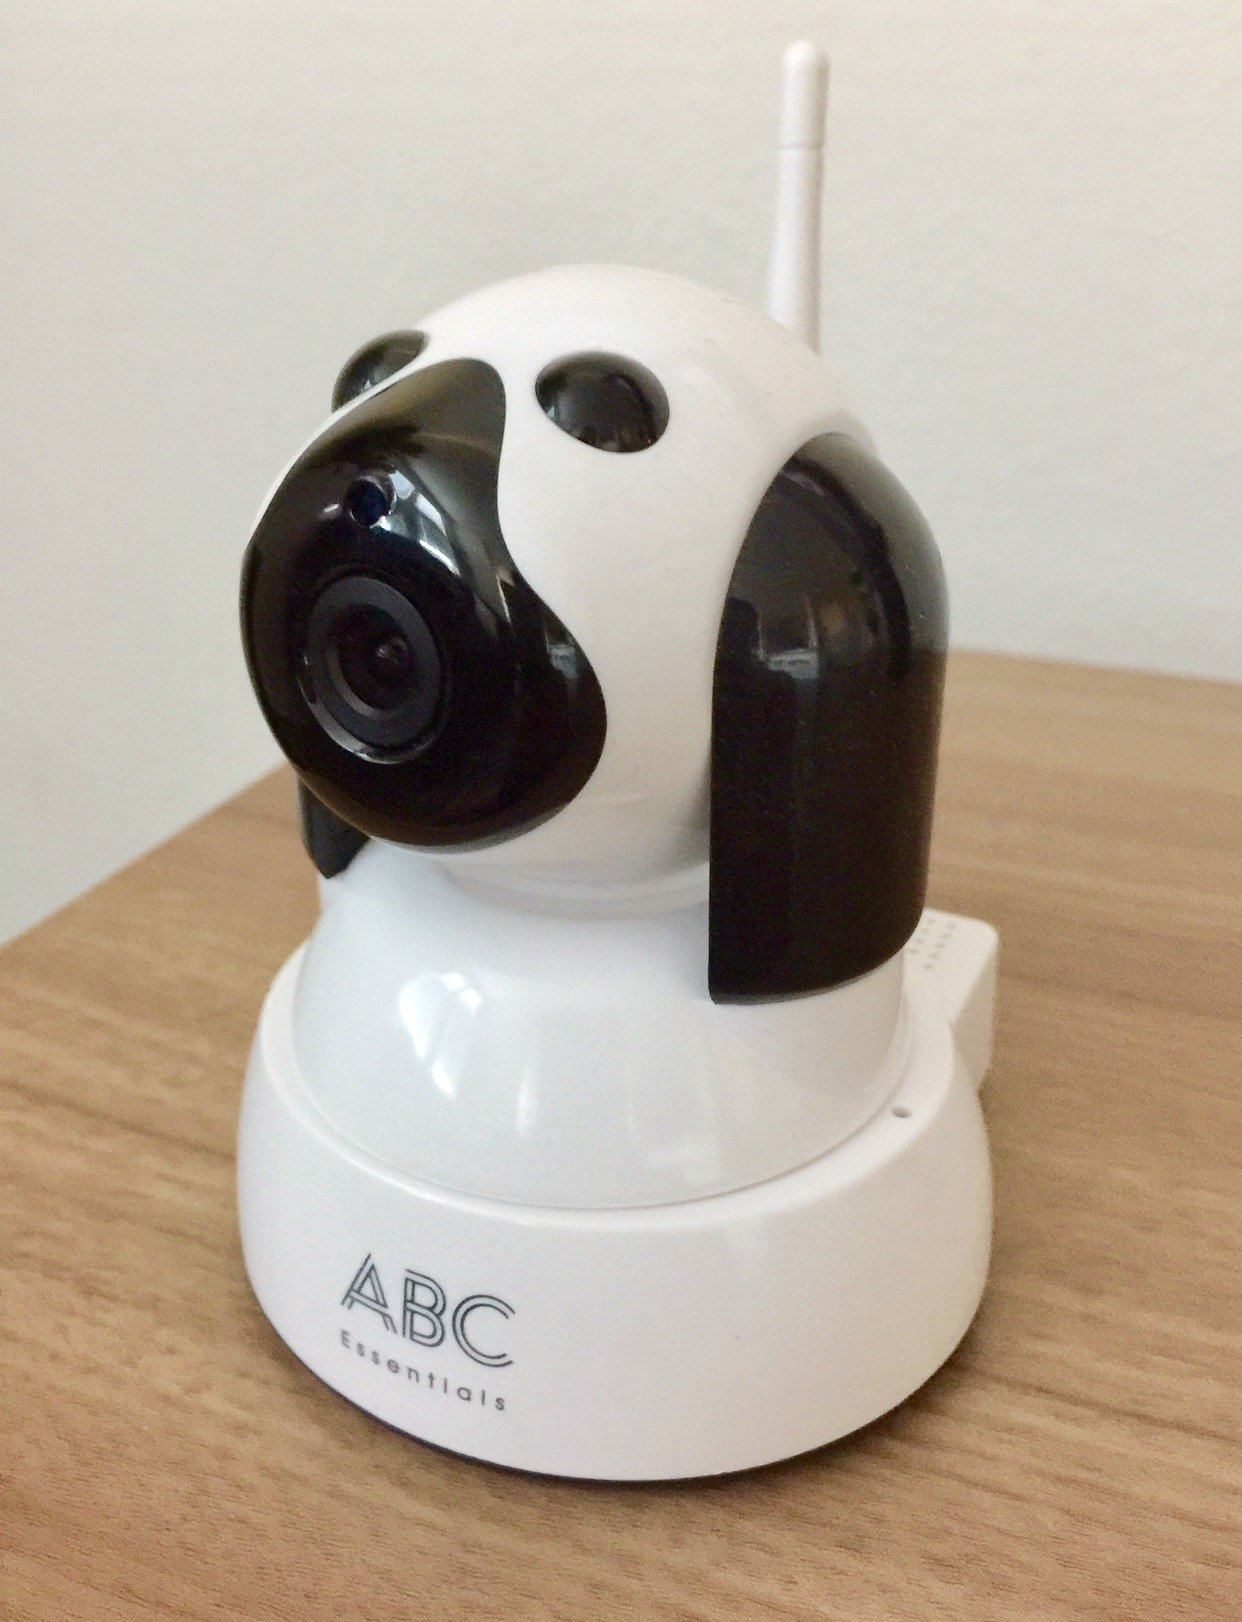 Video Baby Monitor - theWATCHDOG Best Video Camera for Child Kid Pet Monitor- Home/Office WiFi Surveillance Camera for iPhone/Android/Tablet/Computer w/Day/Night Vision 720P by ABC Essentials (Image #7)